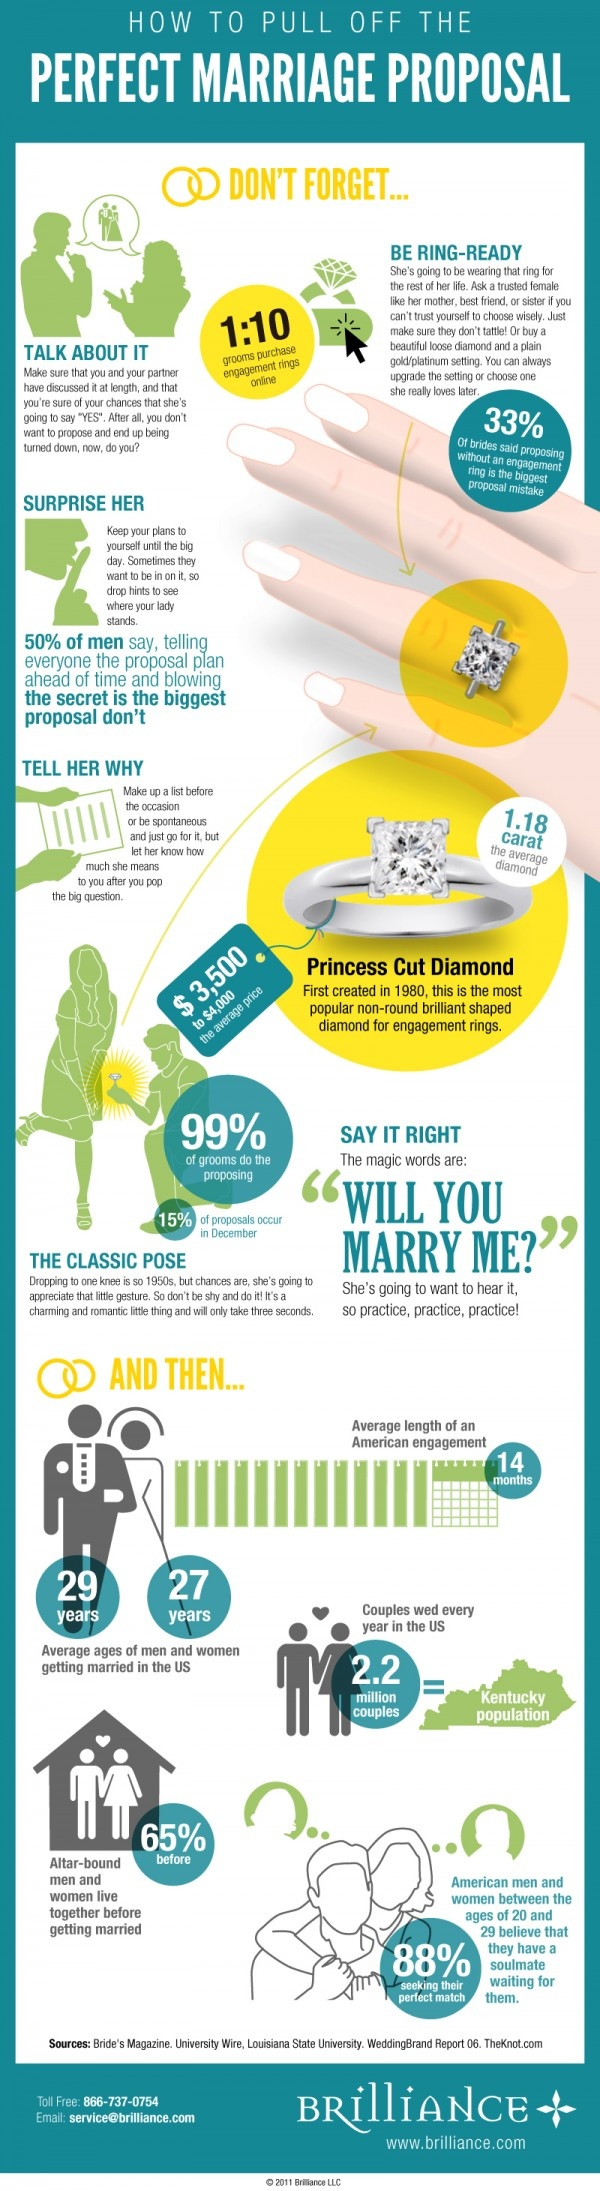 hhaha 15% of proposals are in december. way to be original, josh. :P